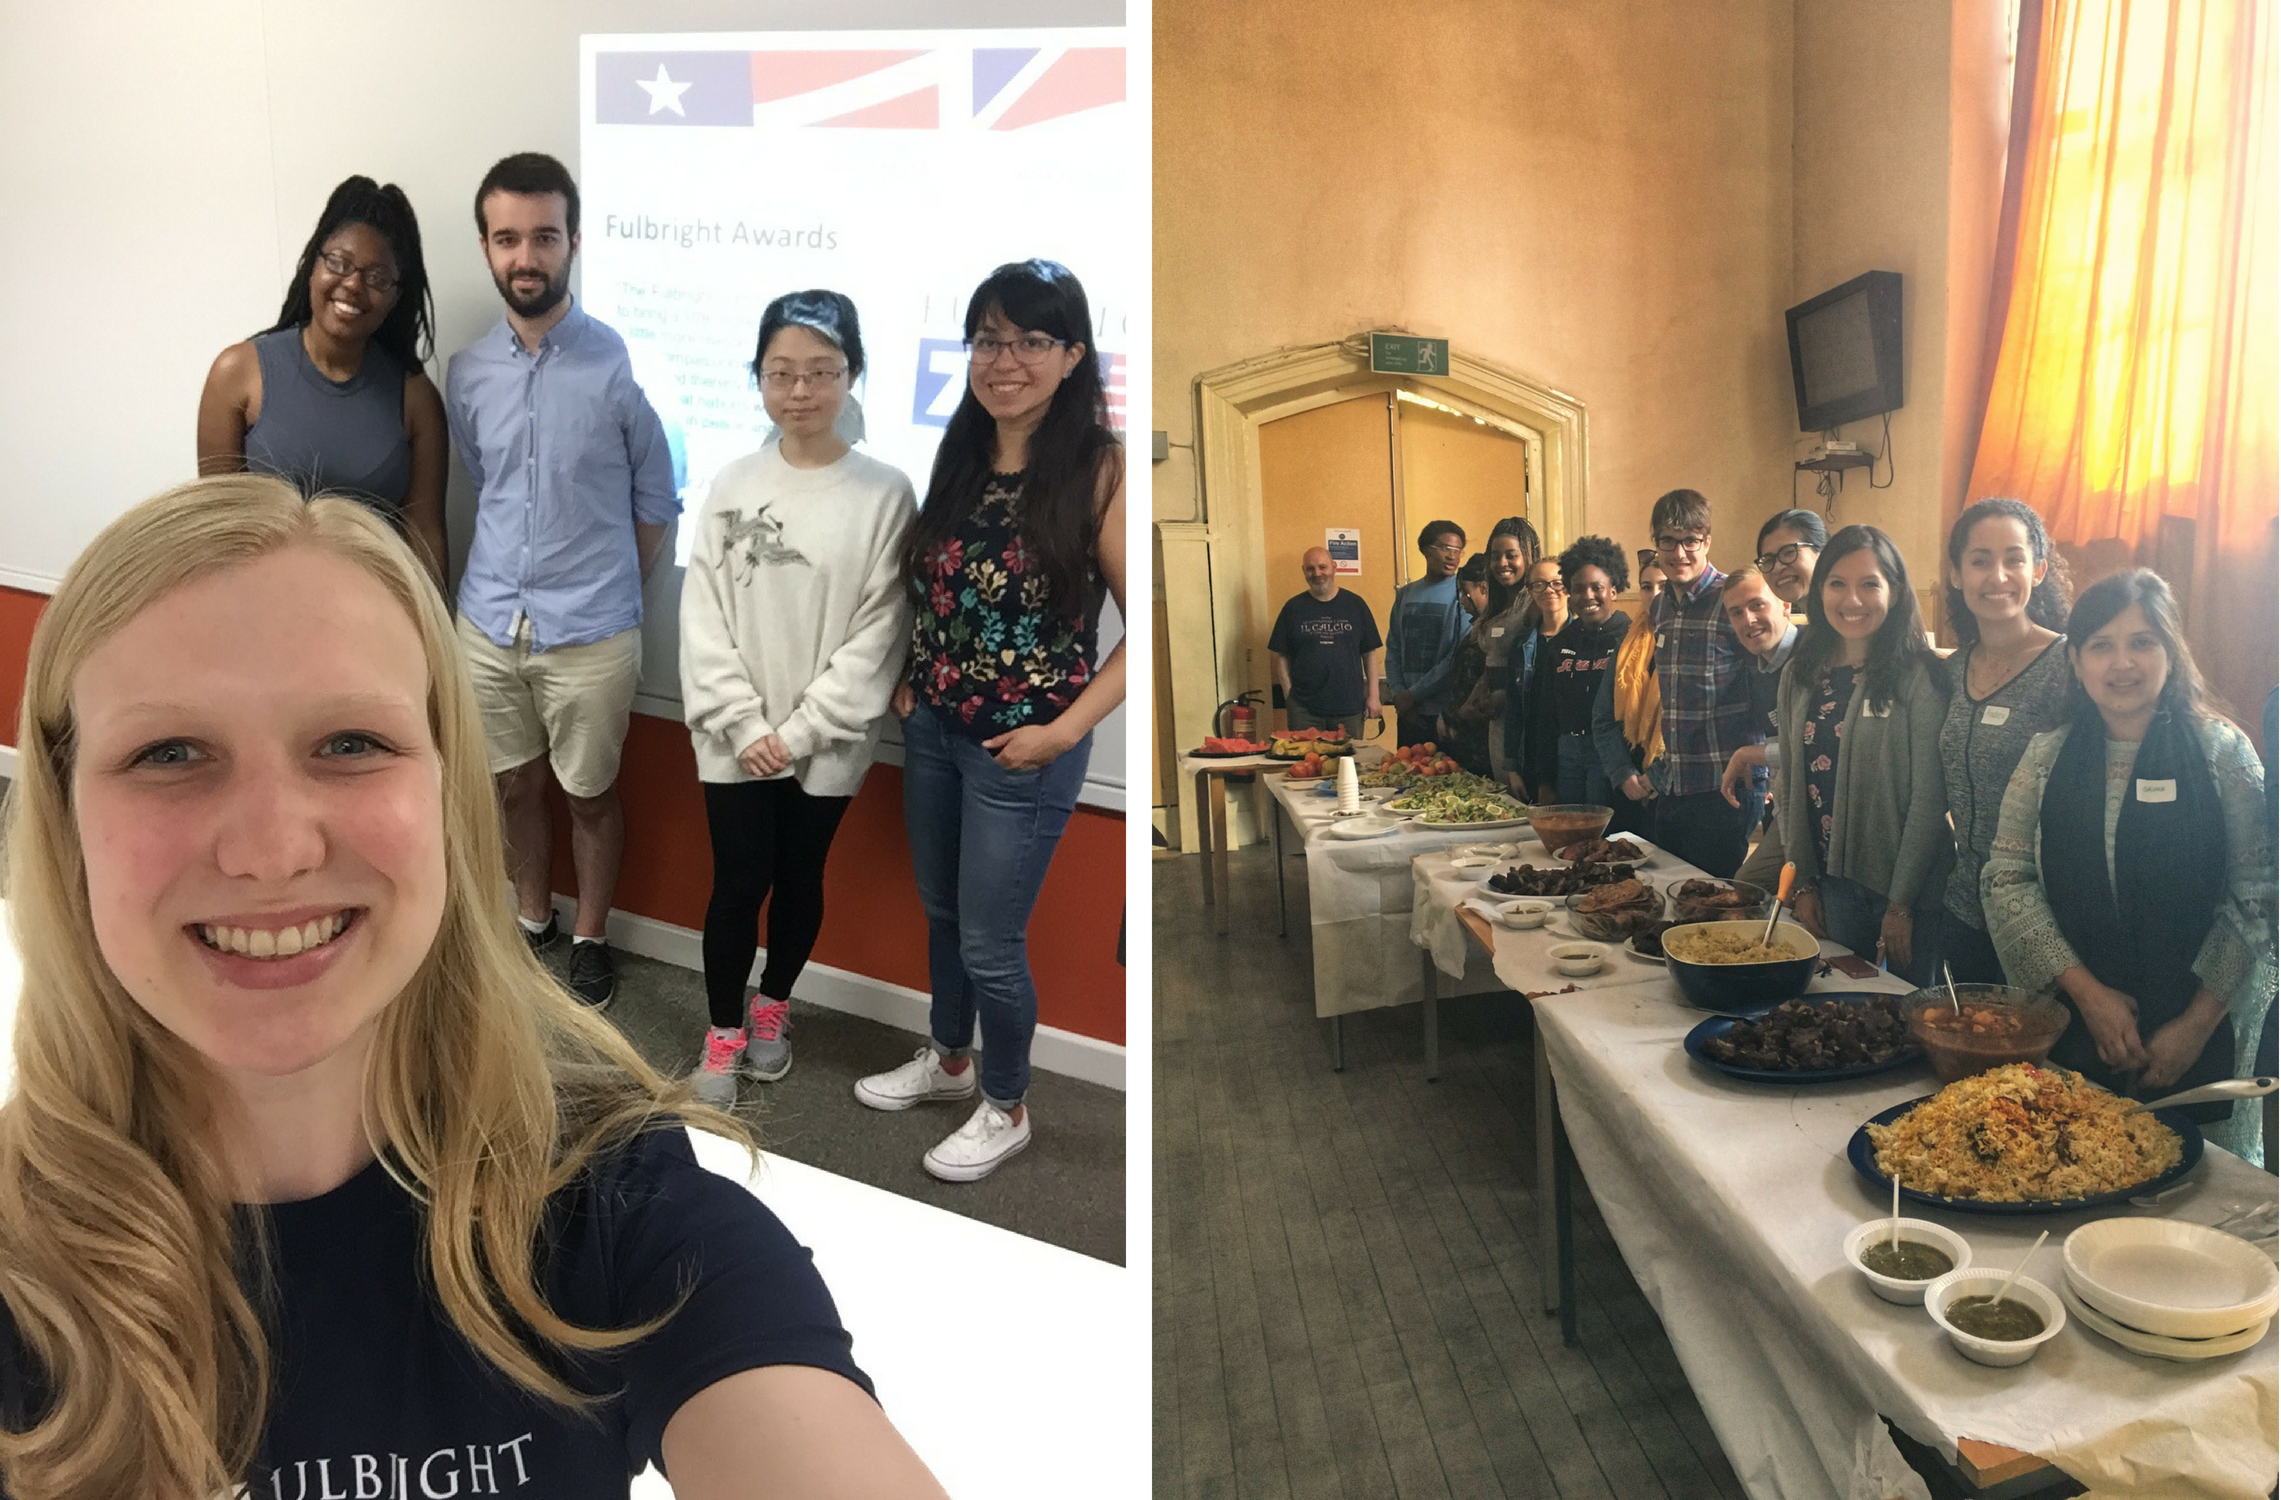 Left: Nina Heyden with students who attended her presentation. Right: Garrett Thompson's health and nutrition workshop in Sheffield.